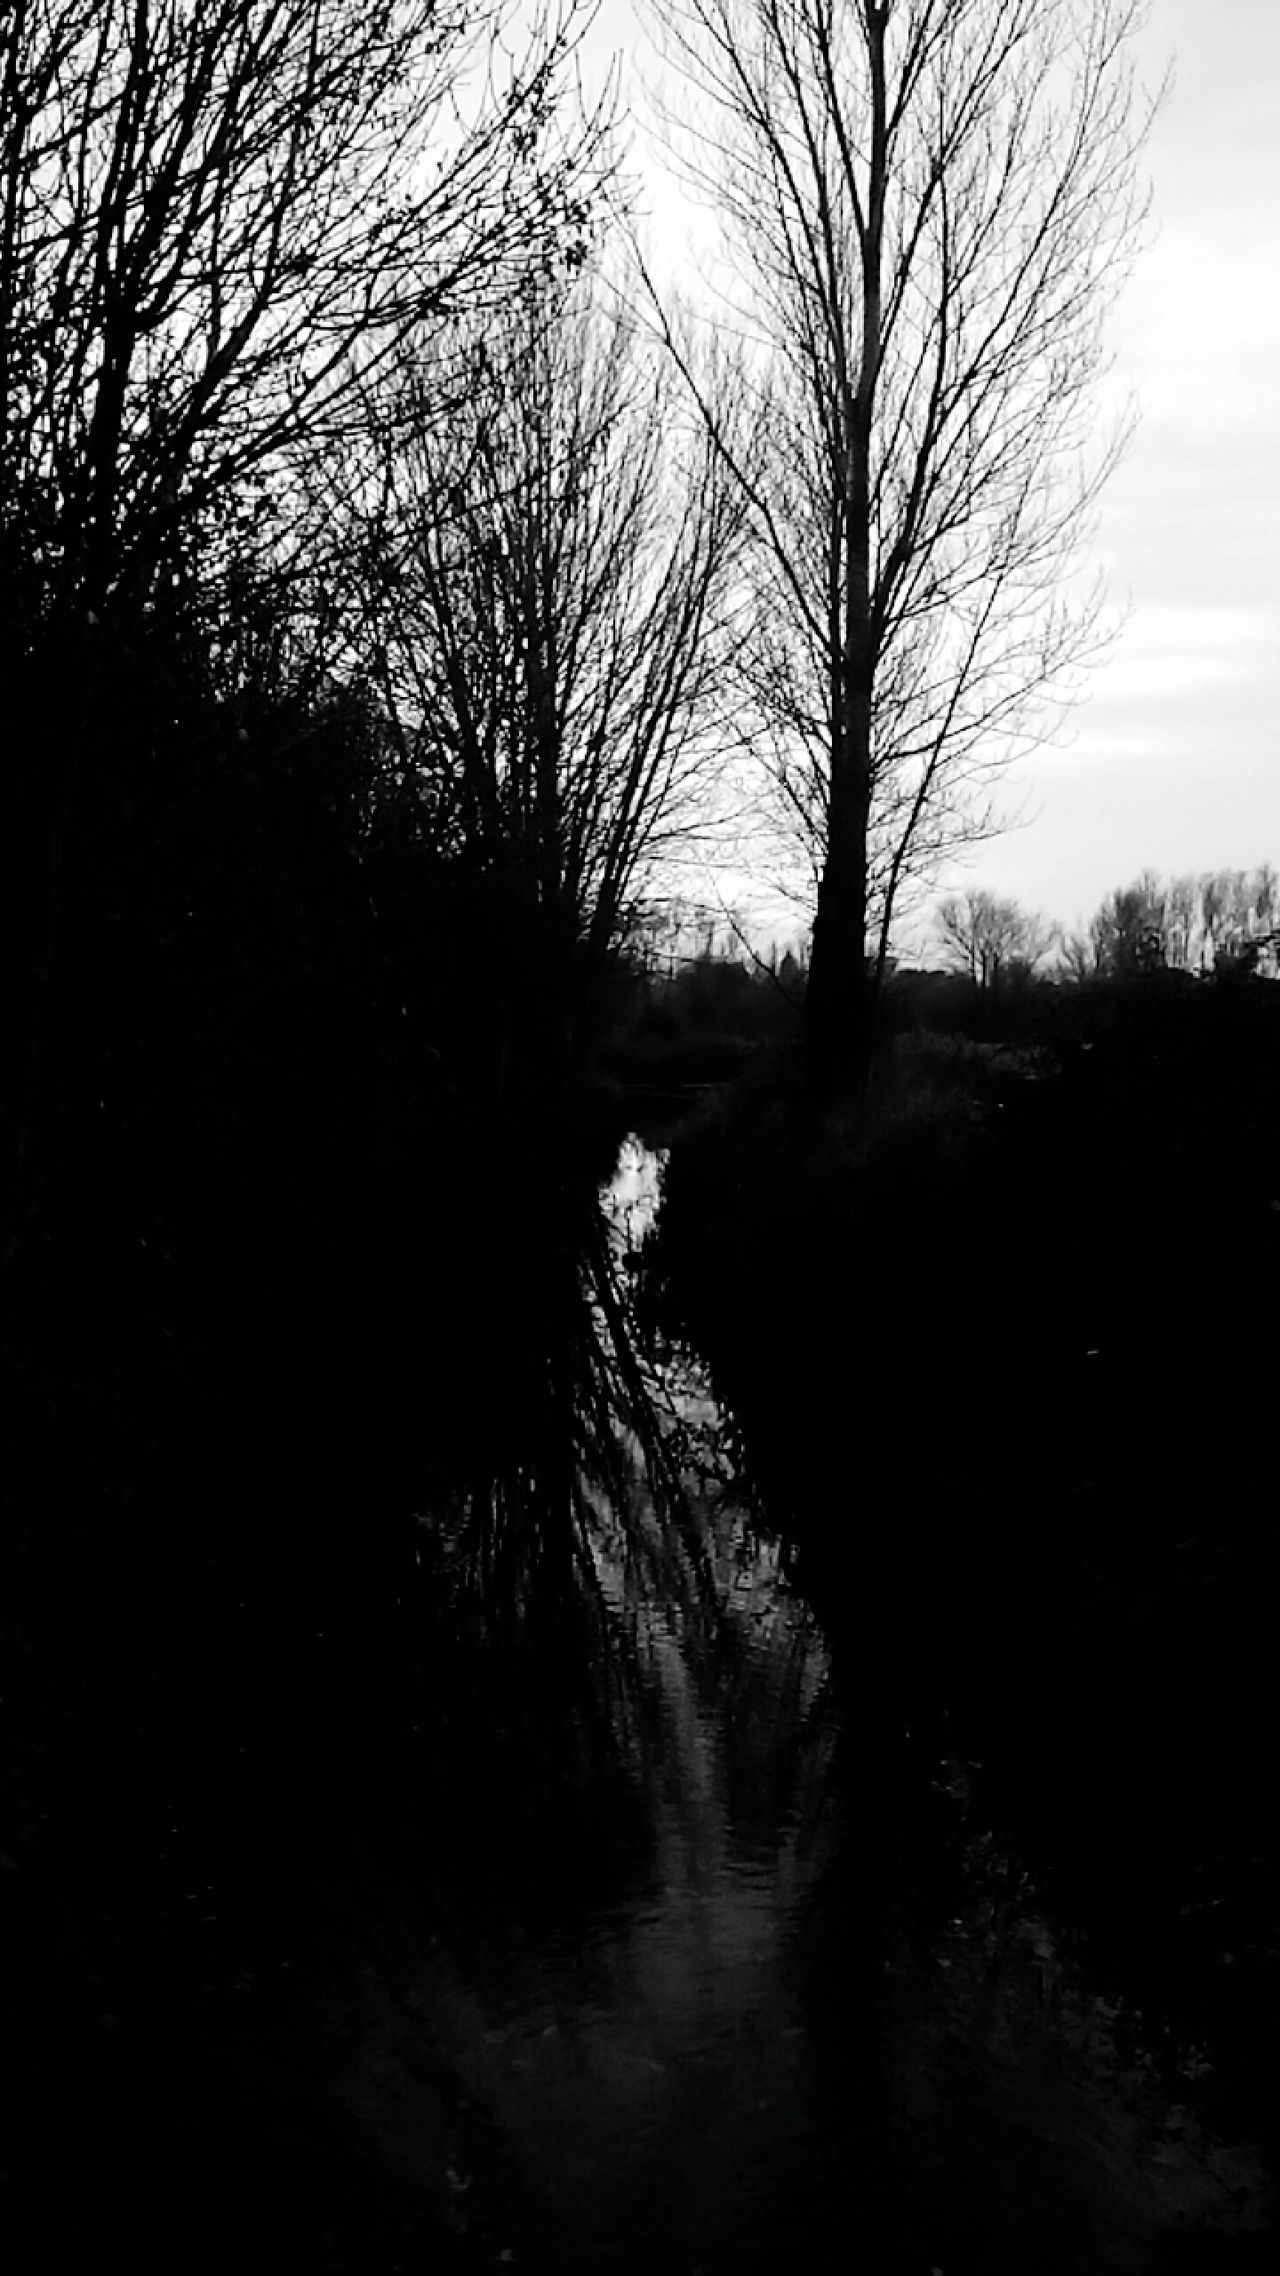 Acequia SPAIN España LeonEsp  Pictureoftheday Españoles Y Sus Fotos Streamzoo Family Taking Photos Black & White Photography Tree Reflection Water Outdoors No People Sky